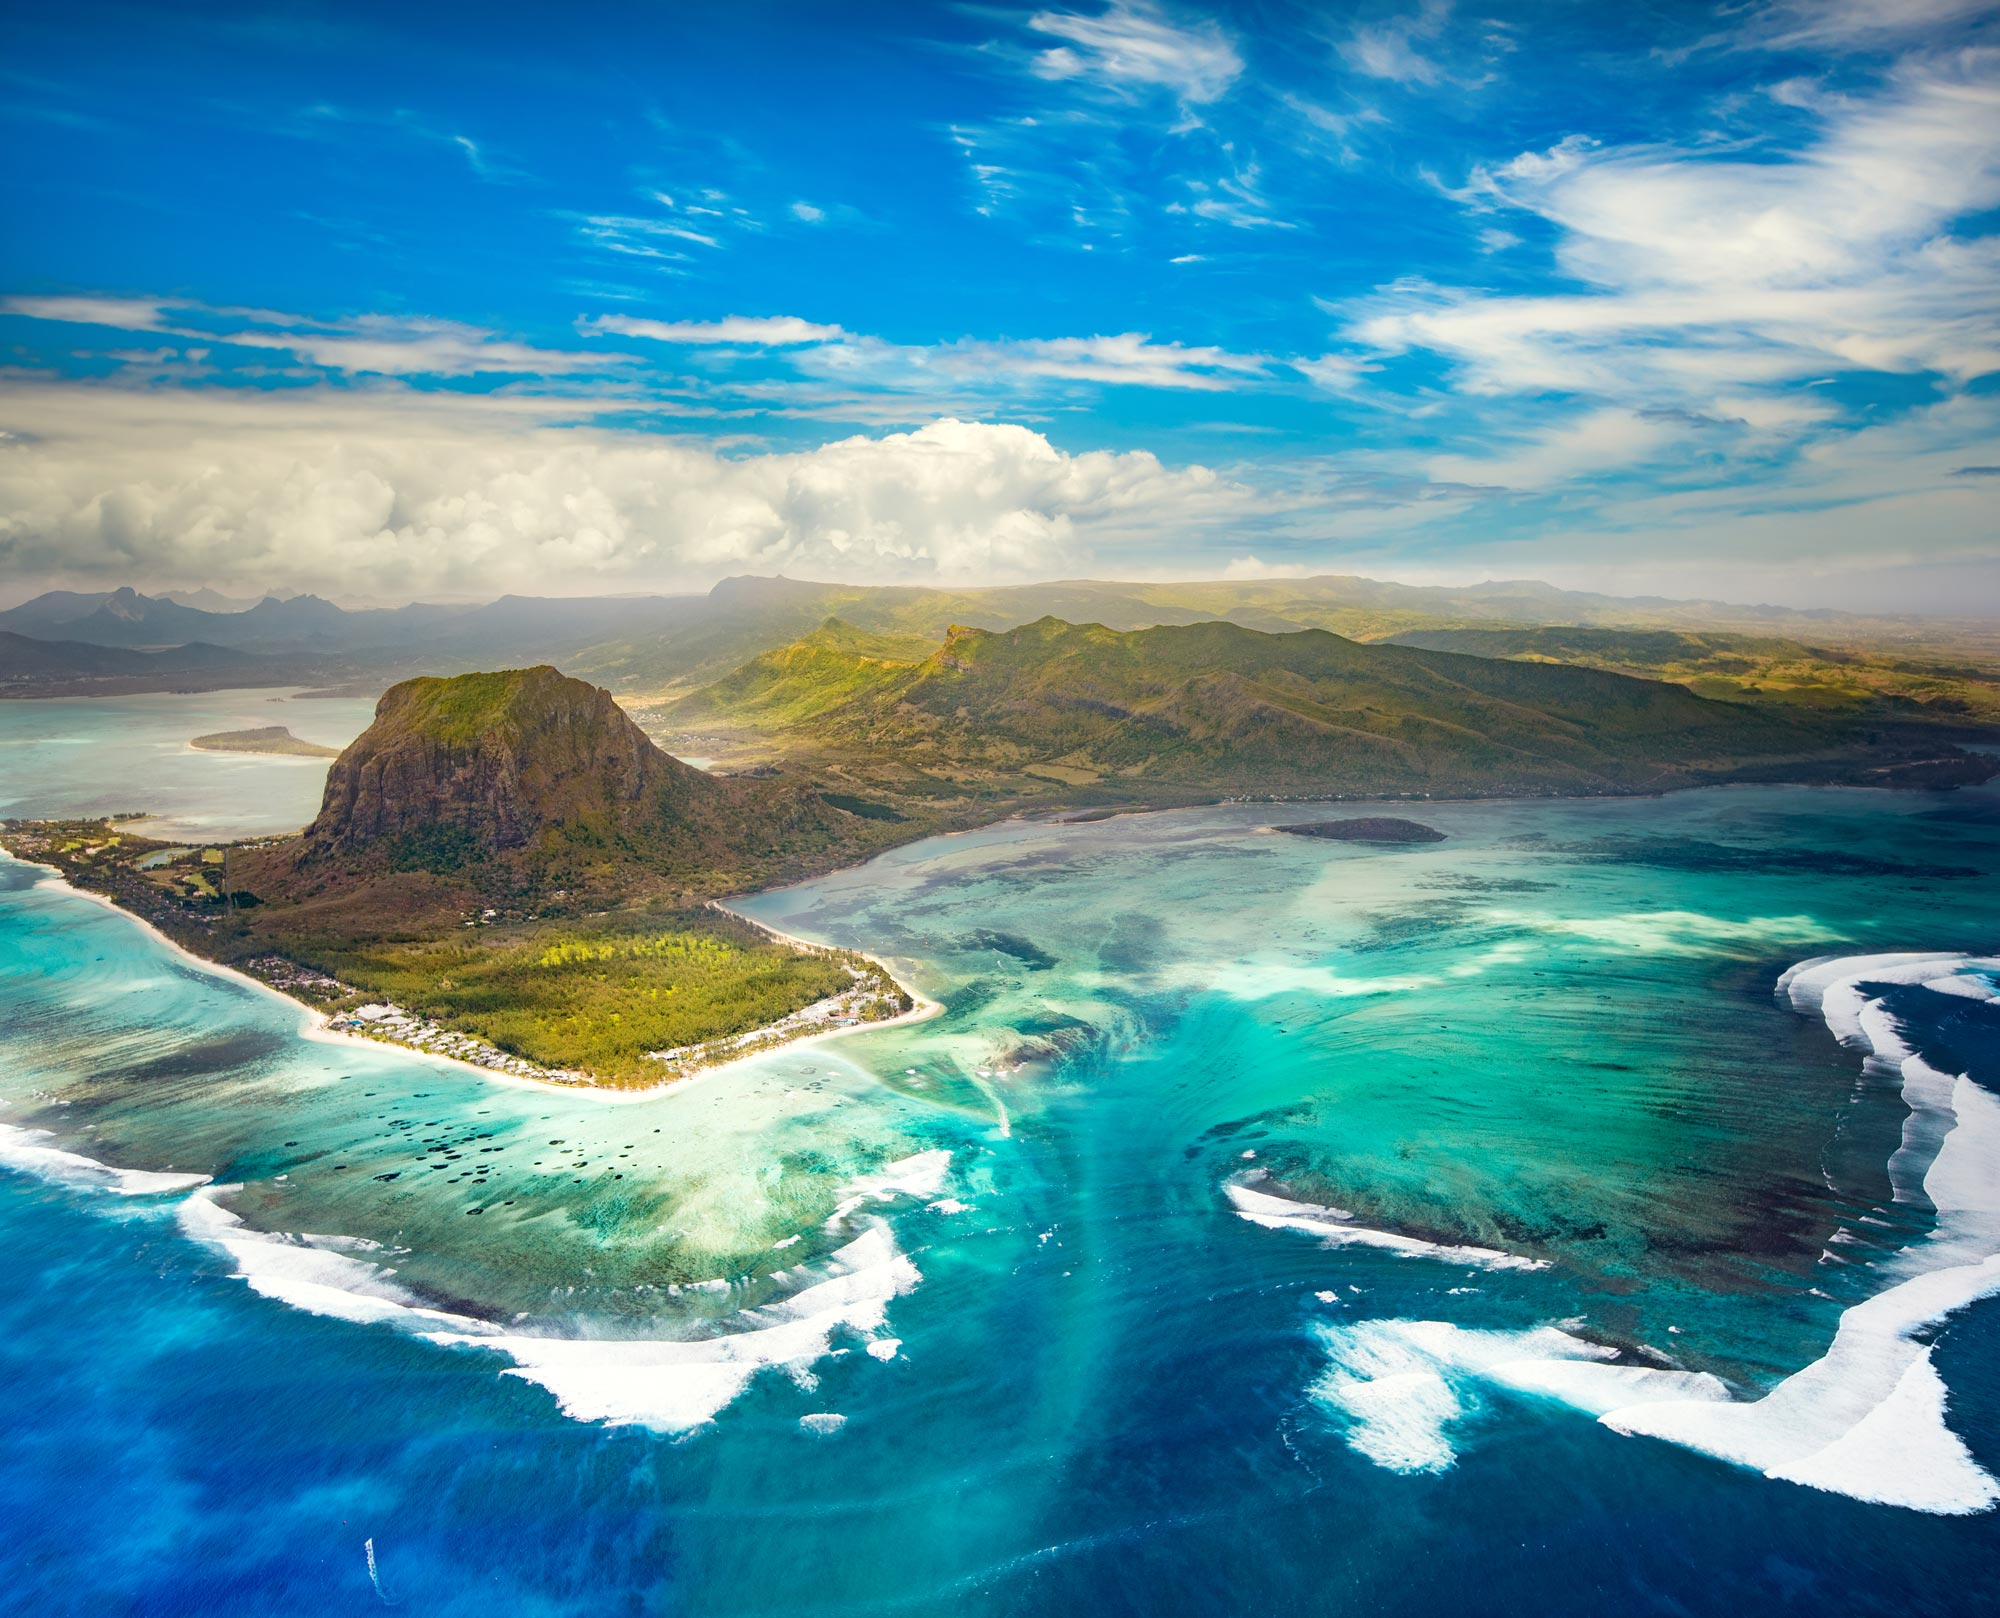 aerial-view-of-the-underwater-waterfall.-mauritius-657825944_3512x2840